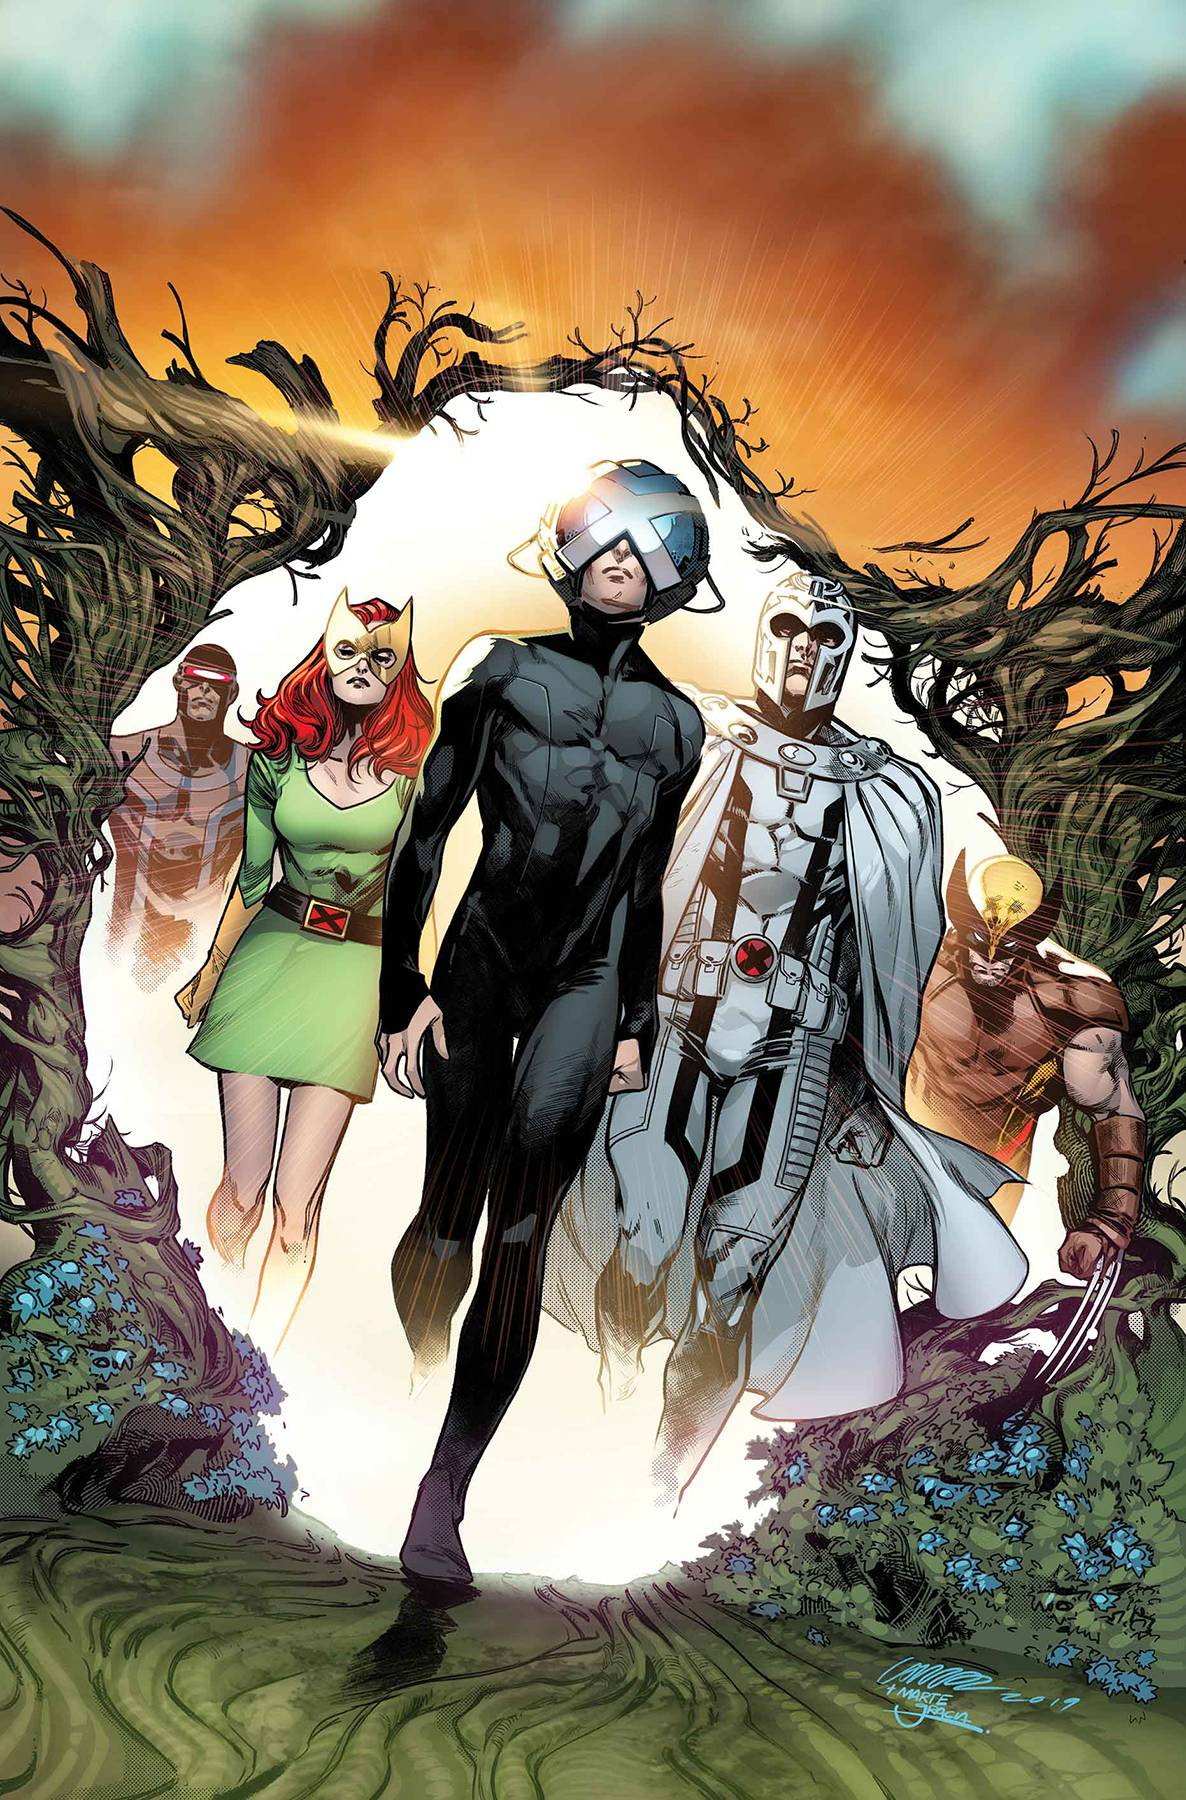 HOUSE OF X #1 (OF 6) (2019)